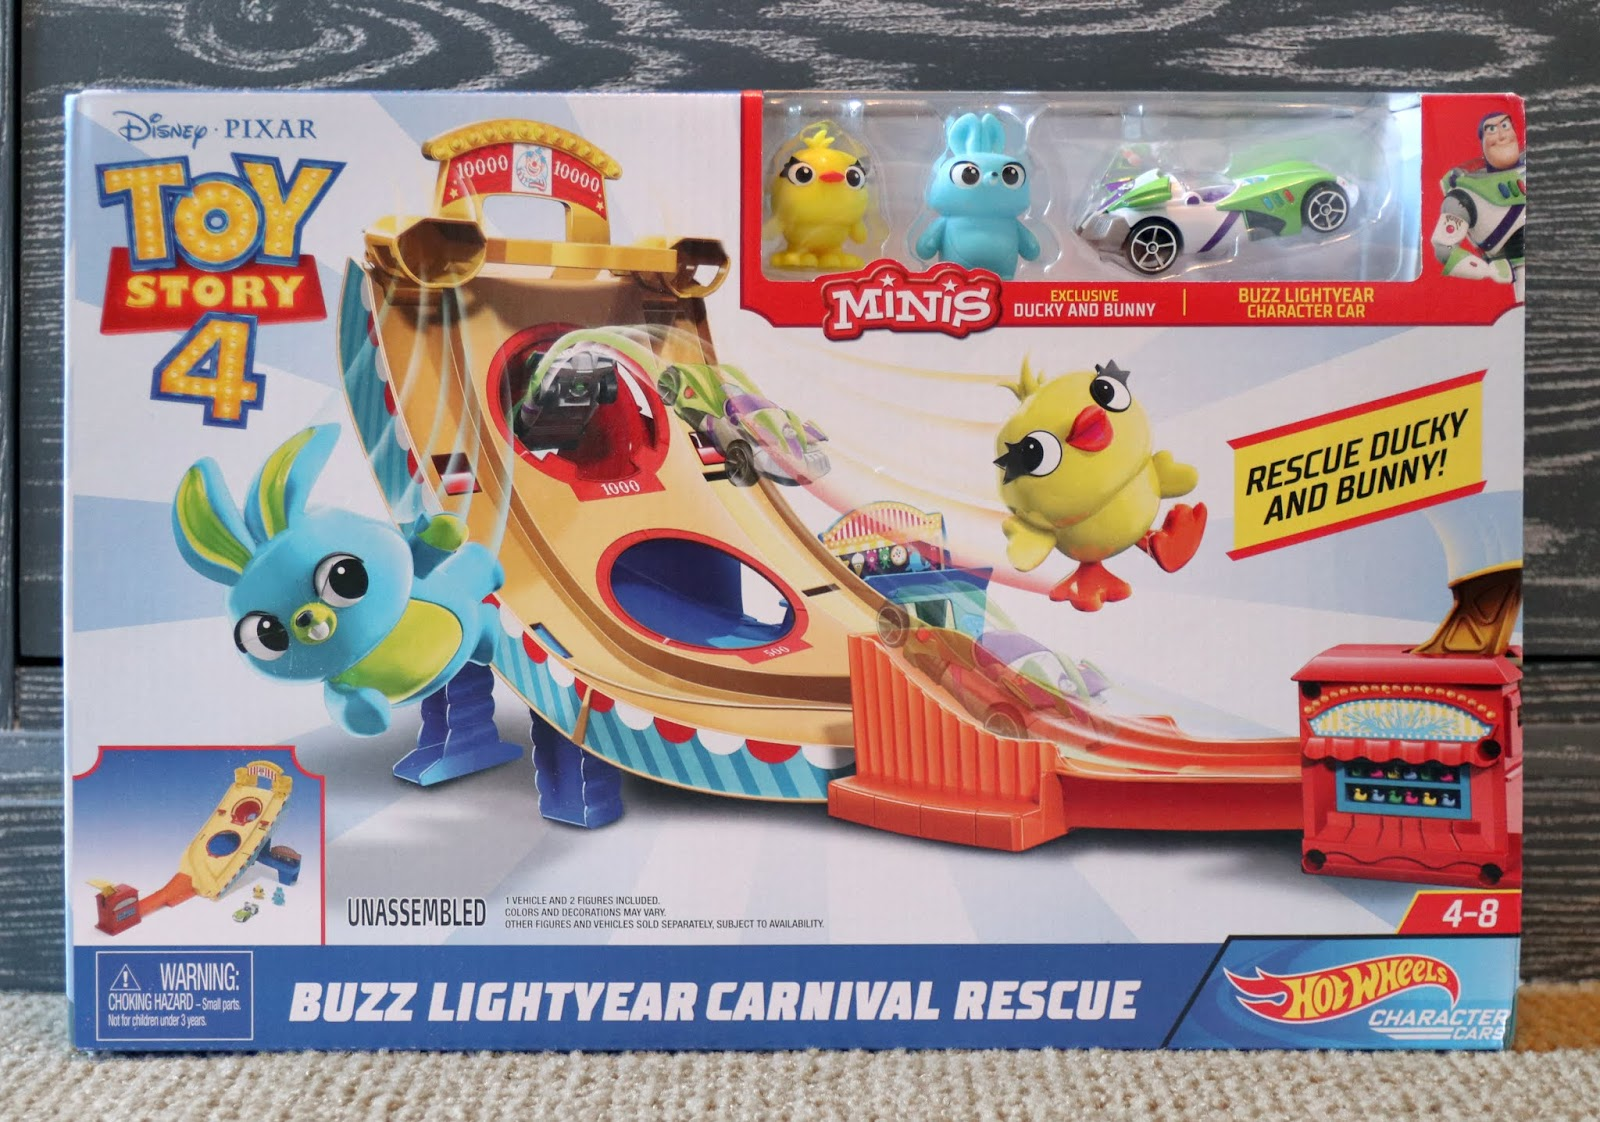 toy story HOT WHEELS BUZZ LIGHTYEAR CARNIVAL RESCUE TRACK SET